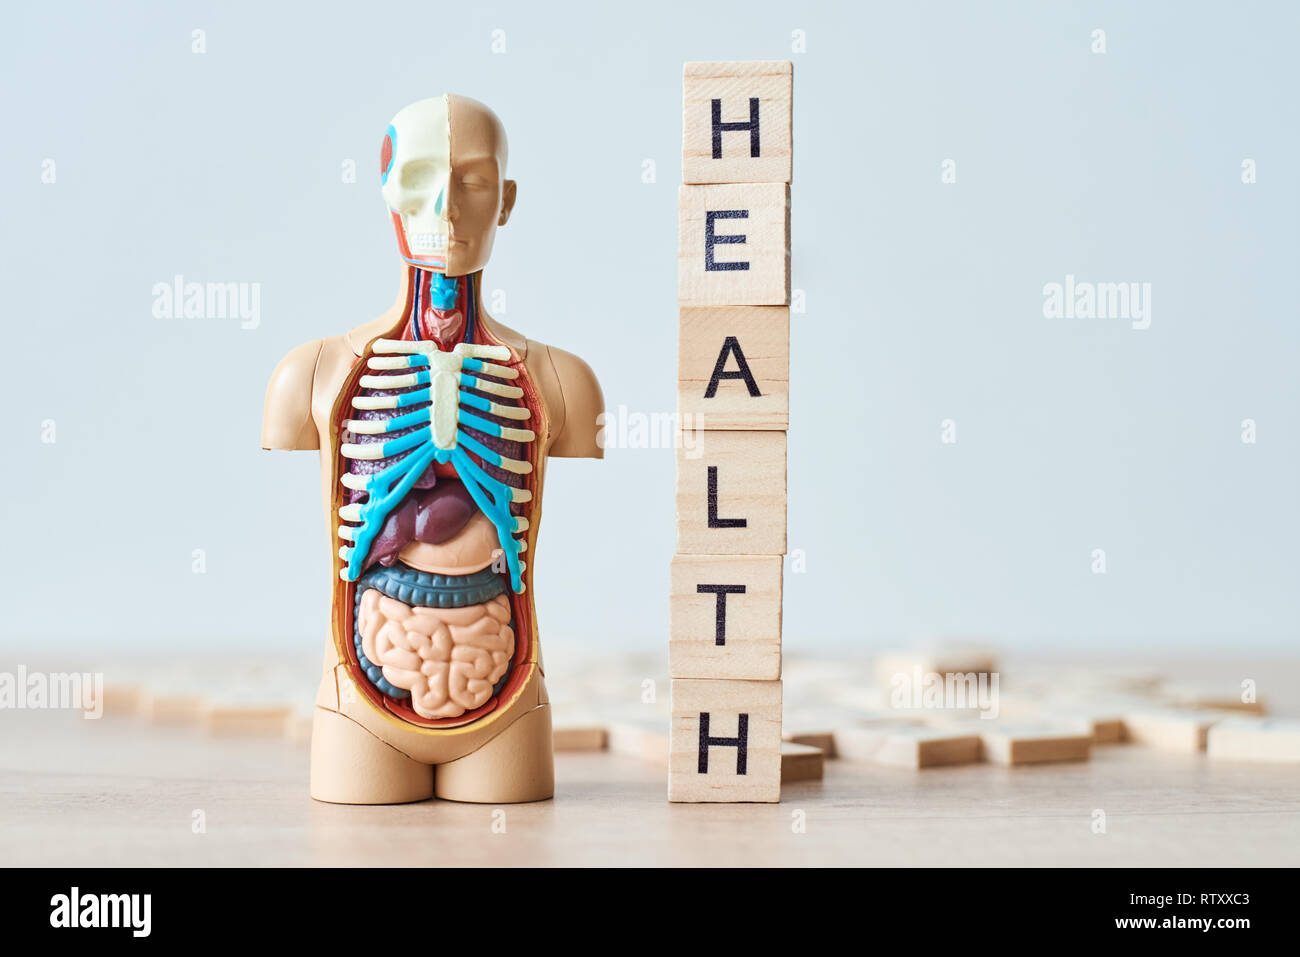 Human internal organs dummy and word health made of wooden blocks on white background with copy space - Stock Image